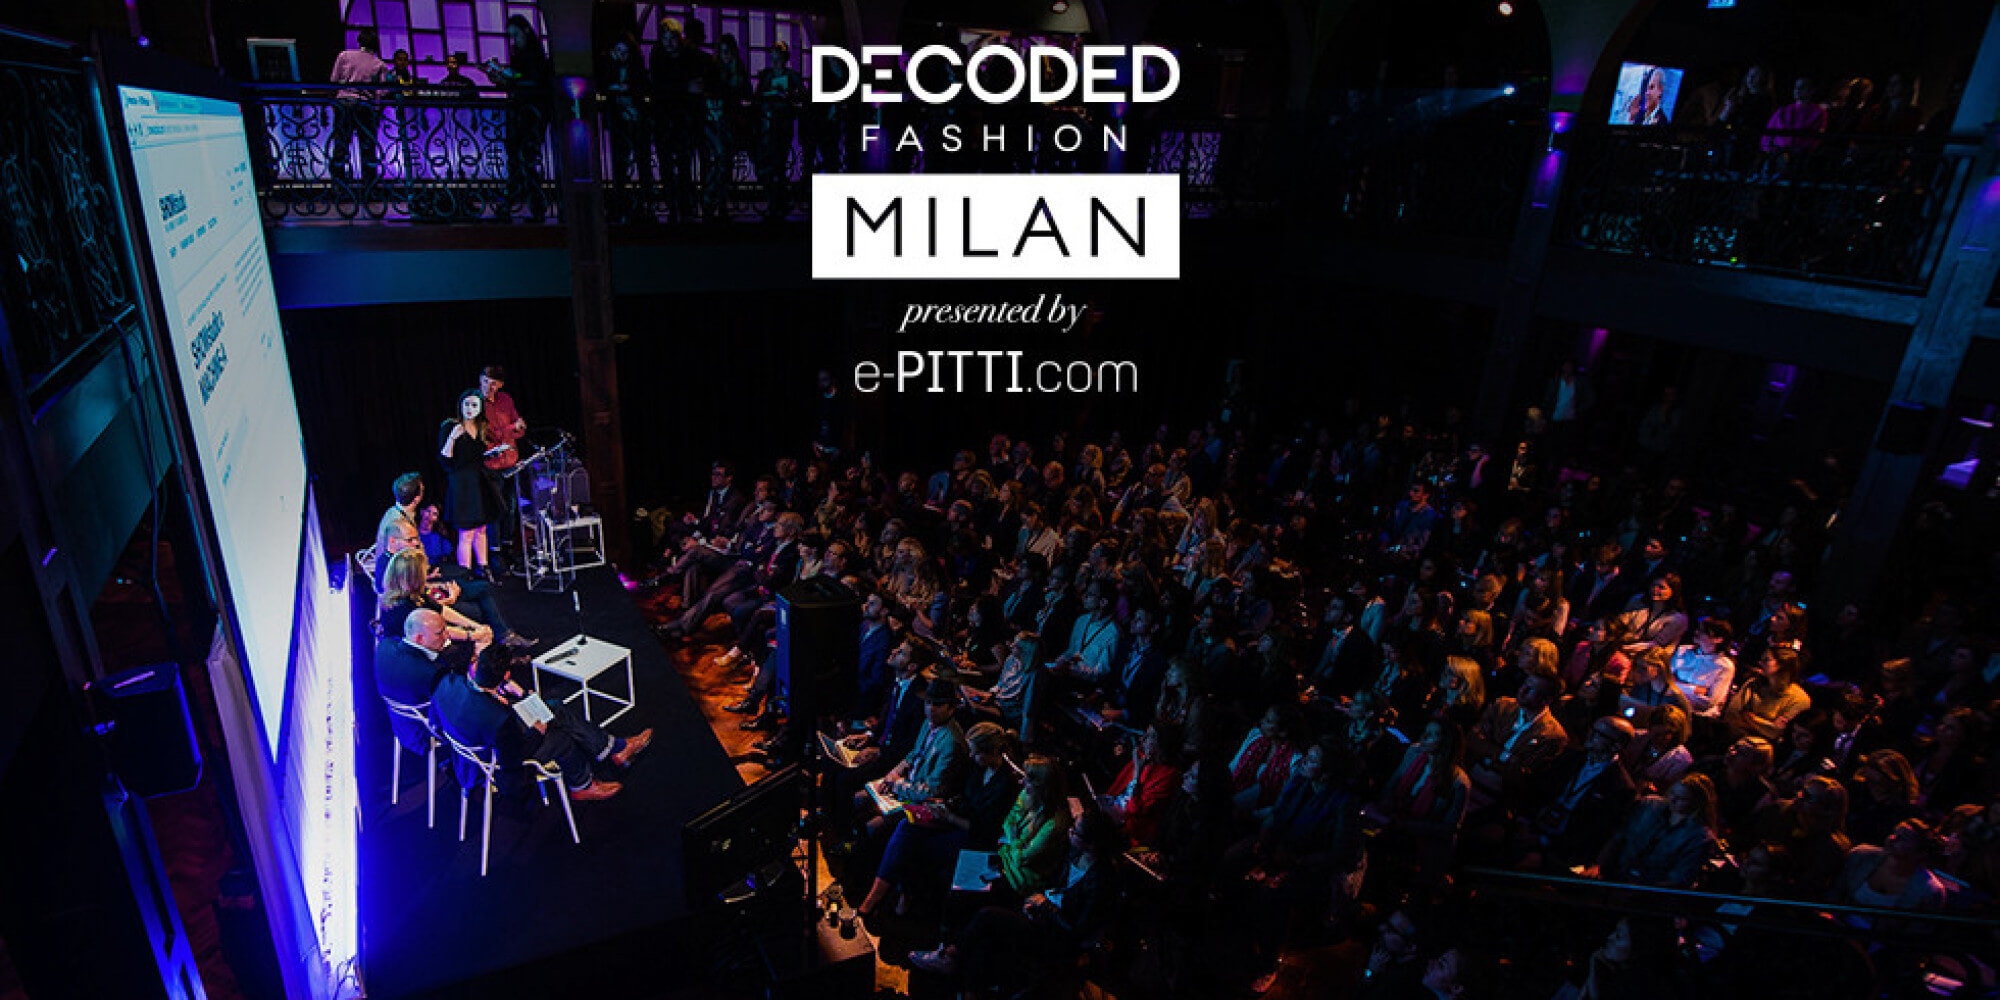 Decoded Fashion Milan '16